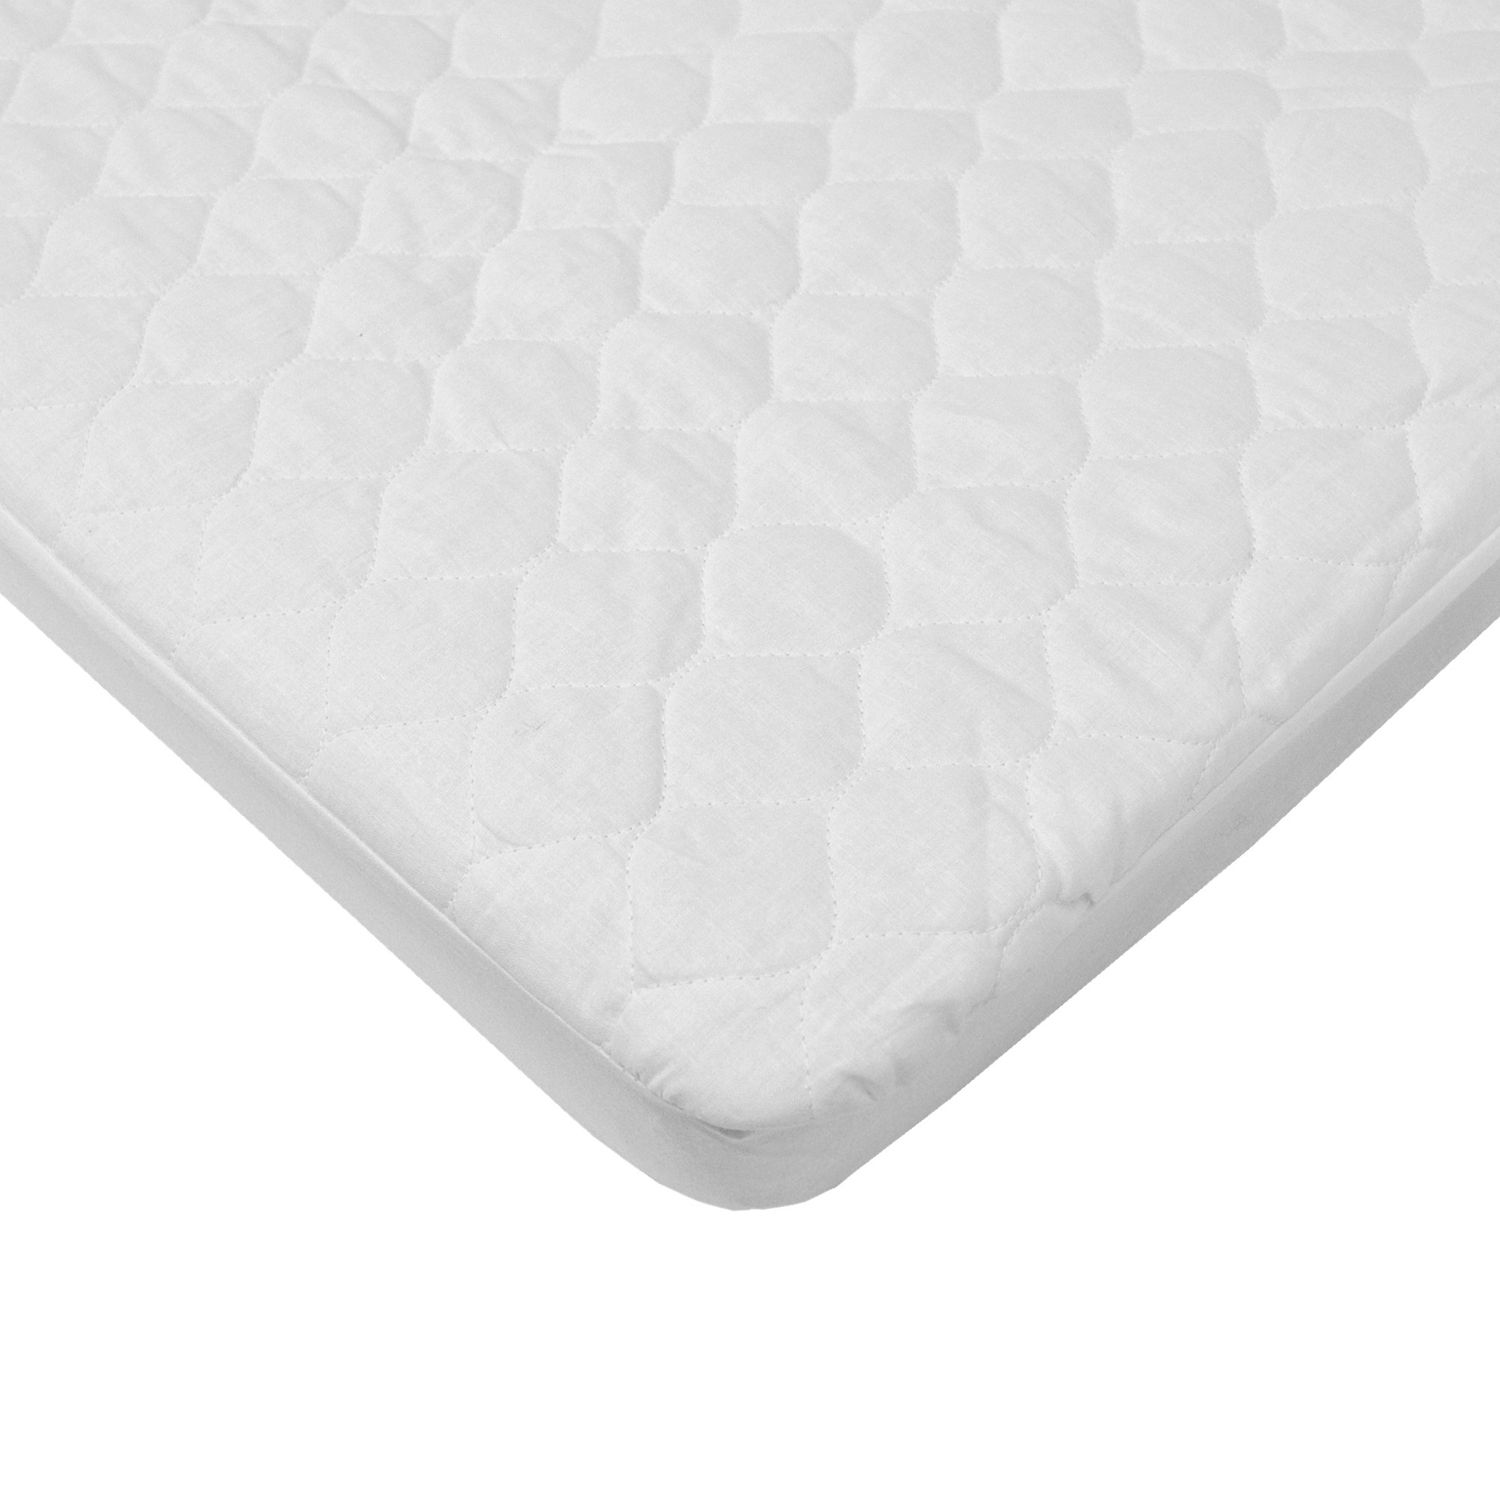 tl care quilted waterproof bassinet fitted mattress pad cover